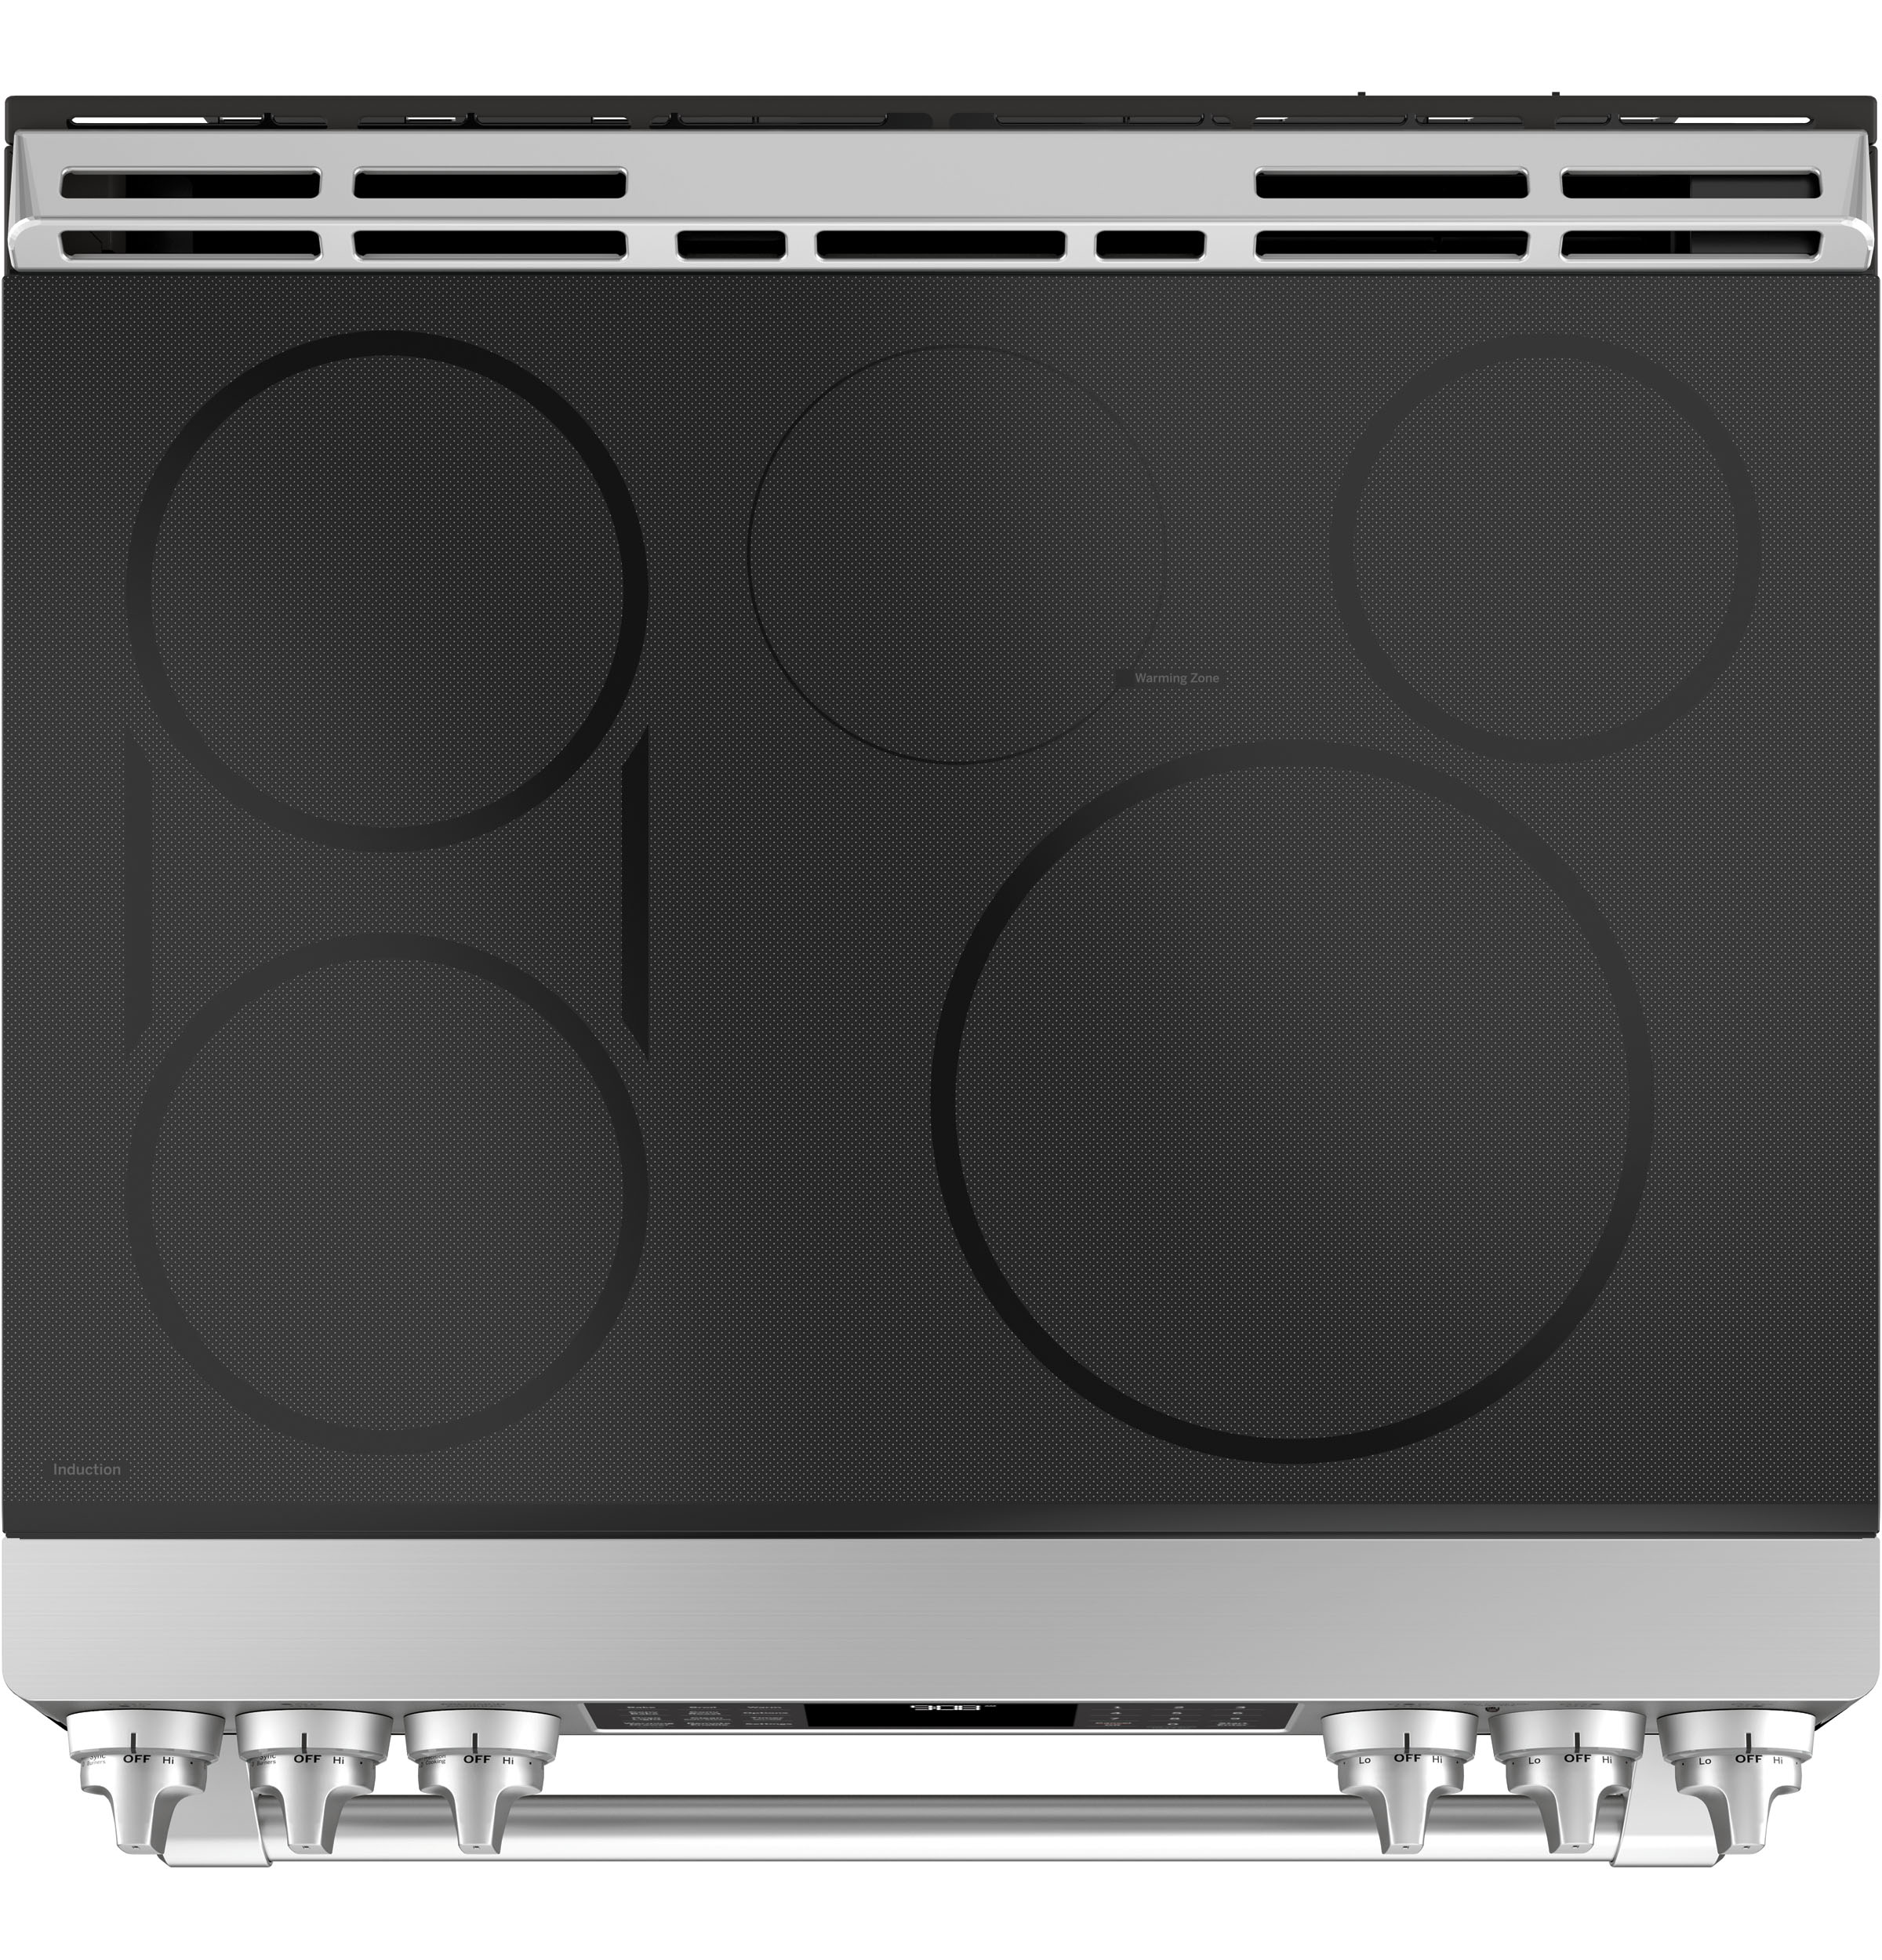 Ge Cafe Series 30 Slide In Front Control Induction And Convection Warm Zone Wiring Diagrams Product Image